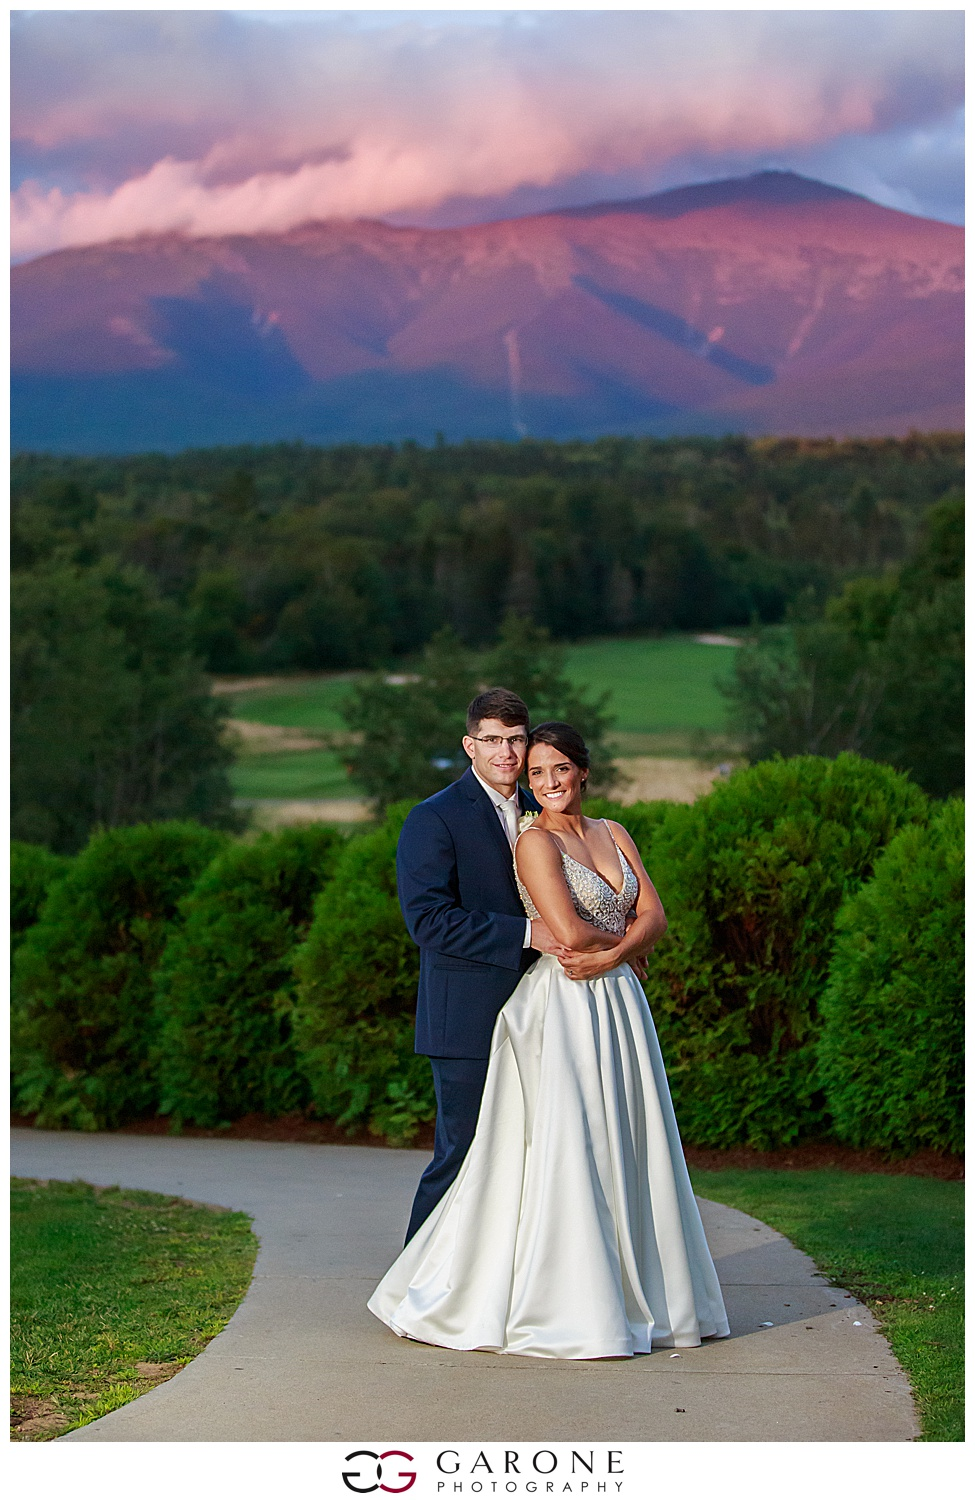 Omni_Mount_Washington_hotel_Wedding_White_Mountain_Wedding_Garone_Photography_0042.jpg